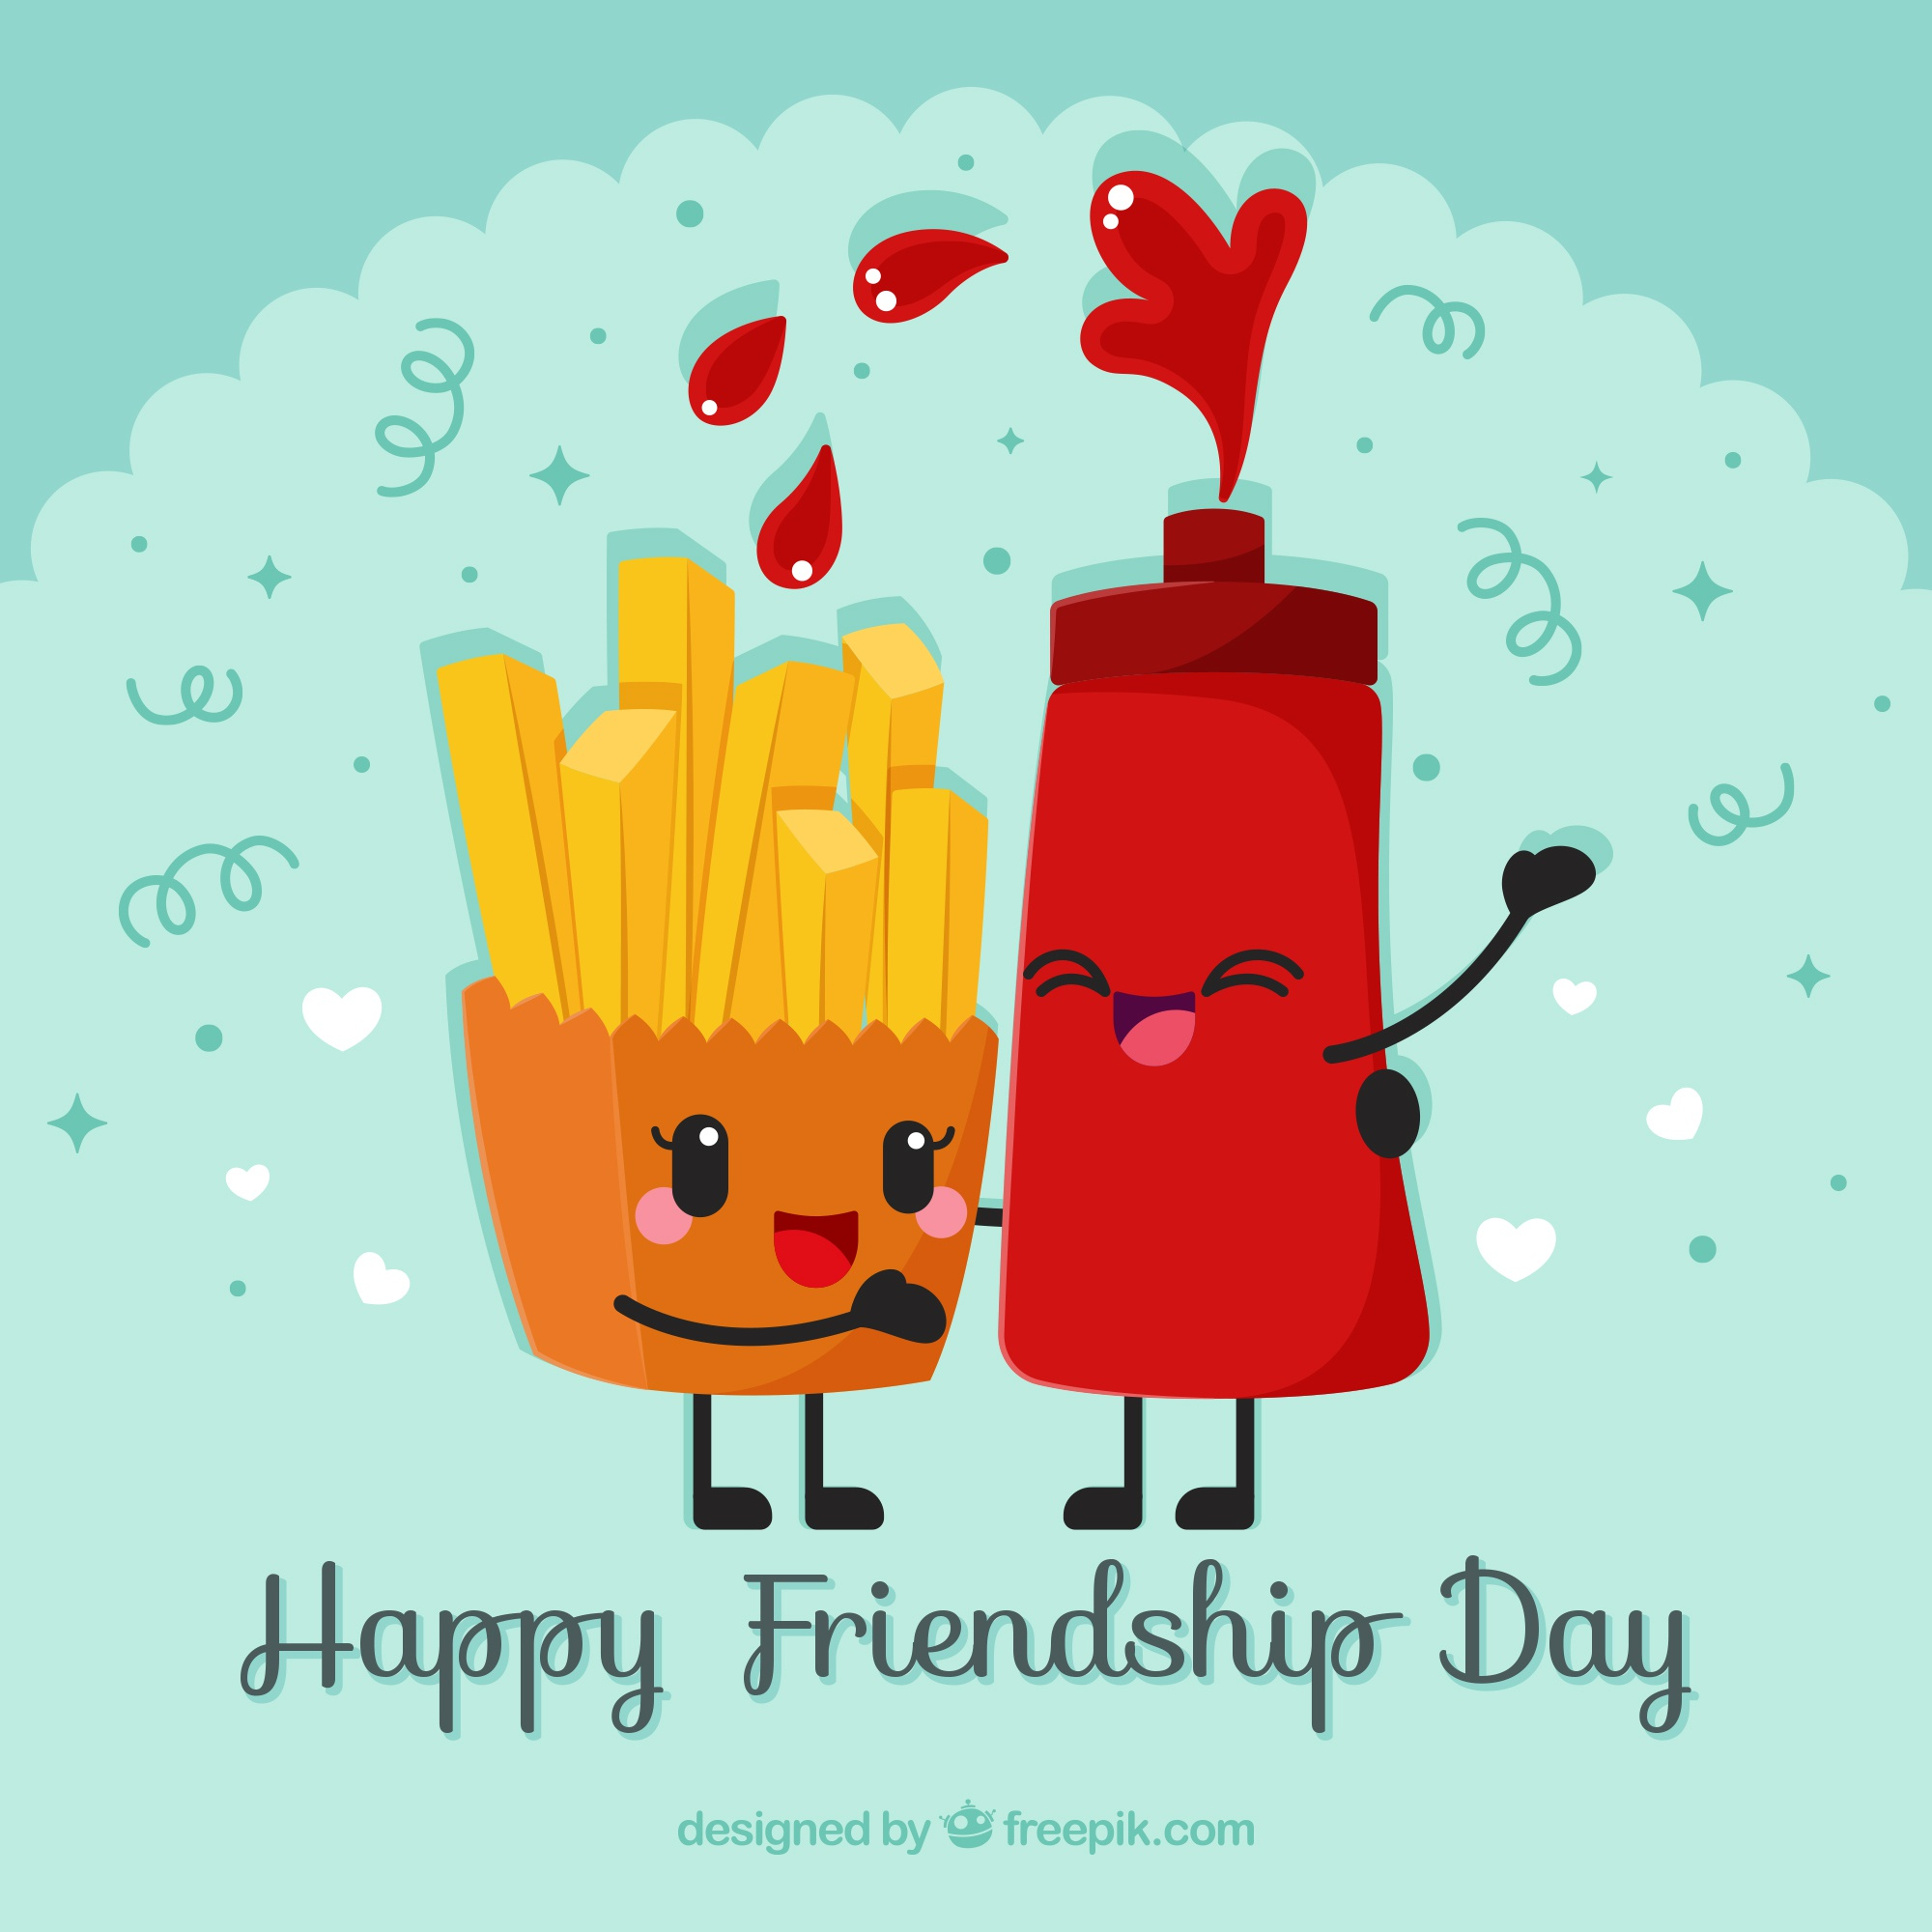 Friendship day background with cute cartoon